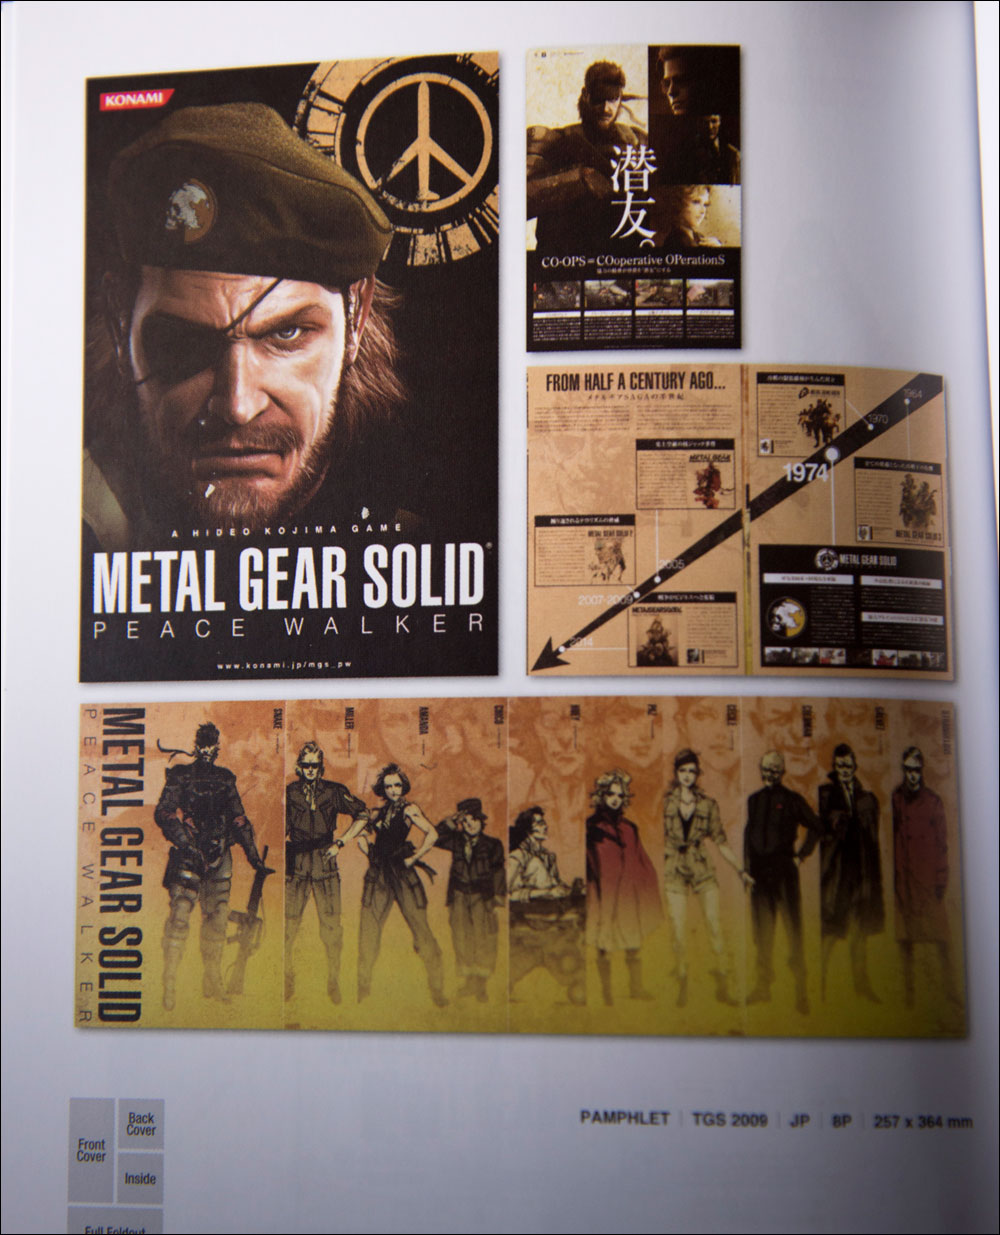 Metal-Gear-Solid-The-Legacy-Collection-Art-Book-MGSPW-Posters